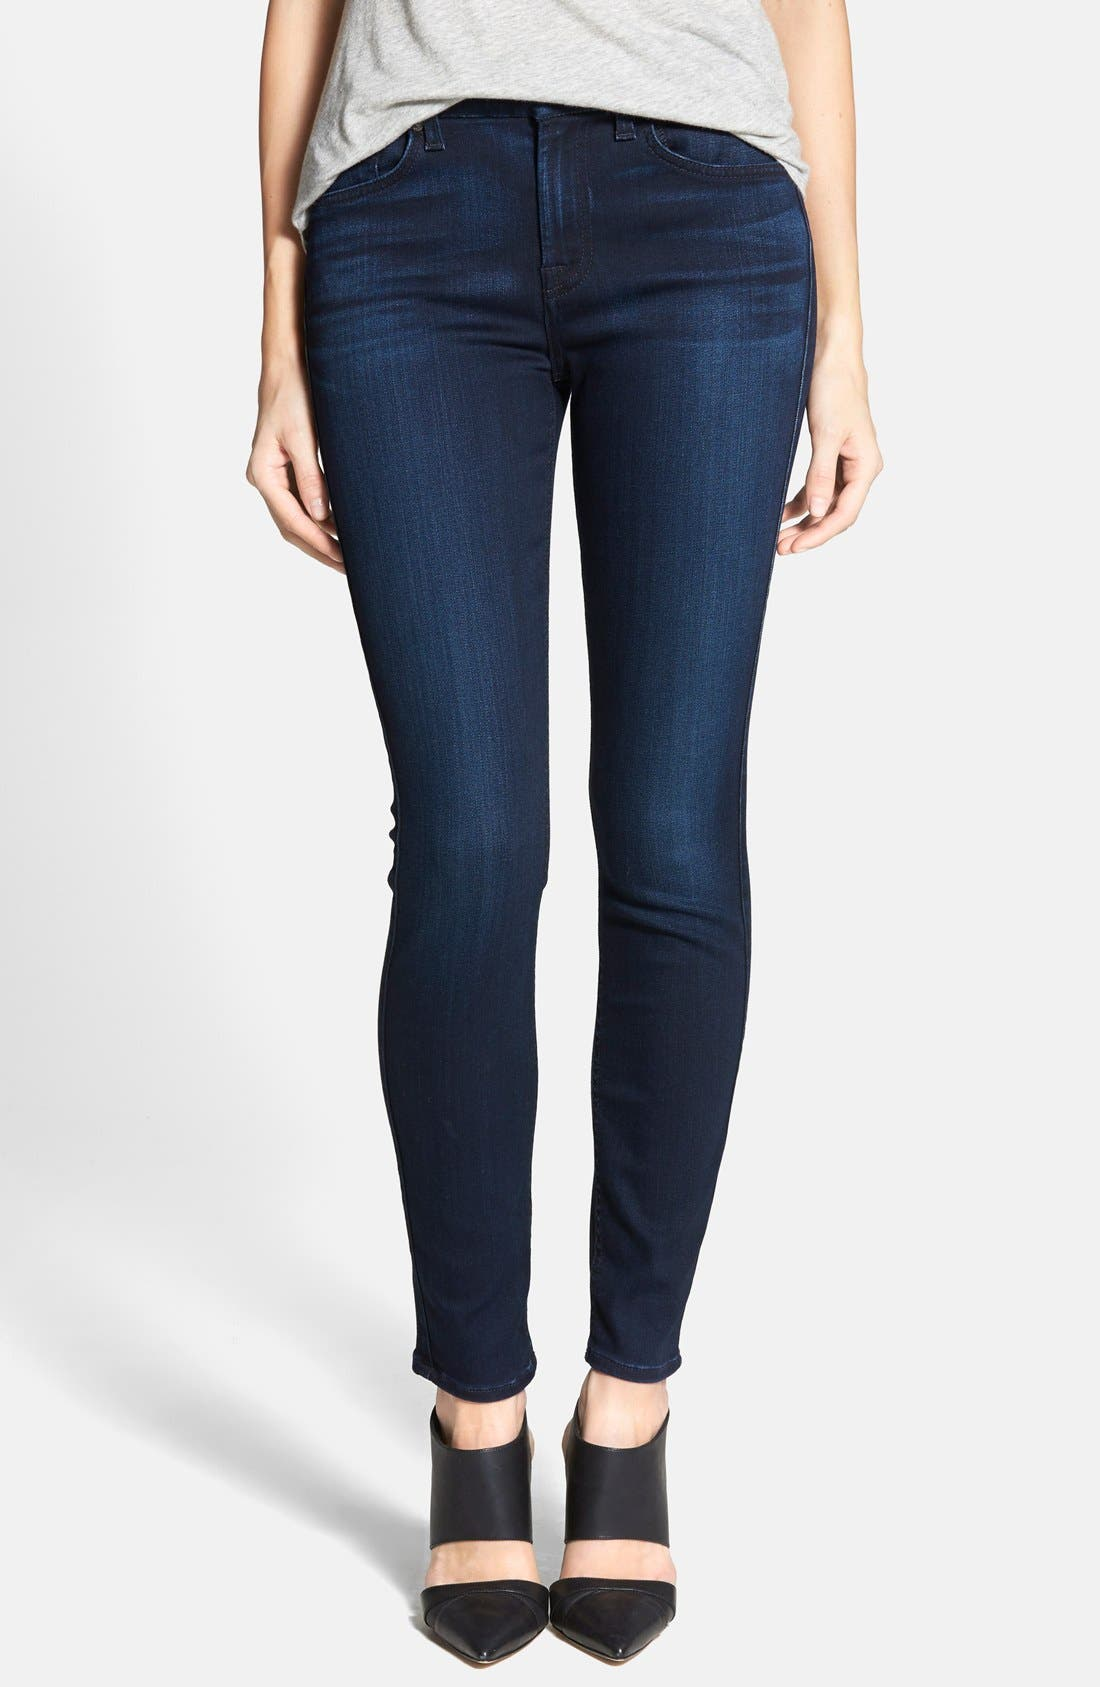 Alternate Image 1 Selected - 7 For All Mankind® 'The Ankle Skinny' Contour Jeans (Pristine Blue Black)